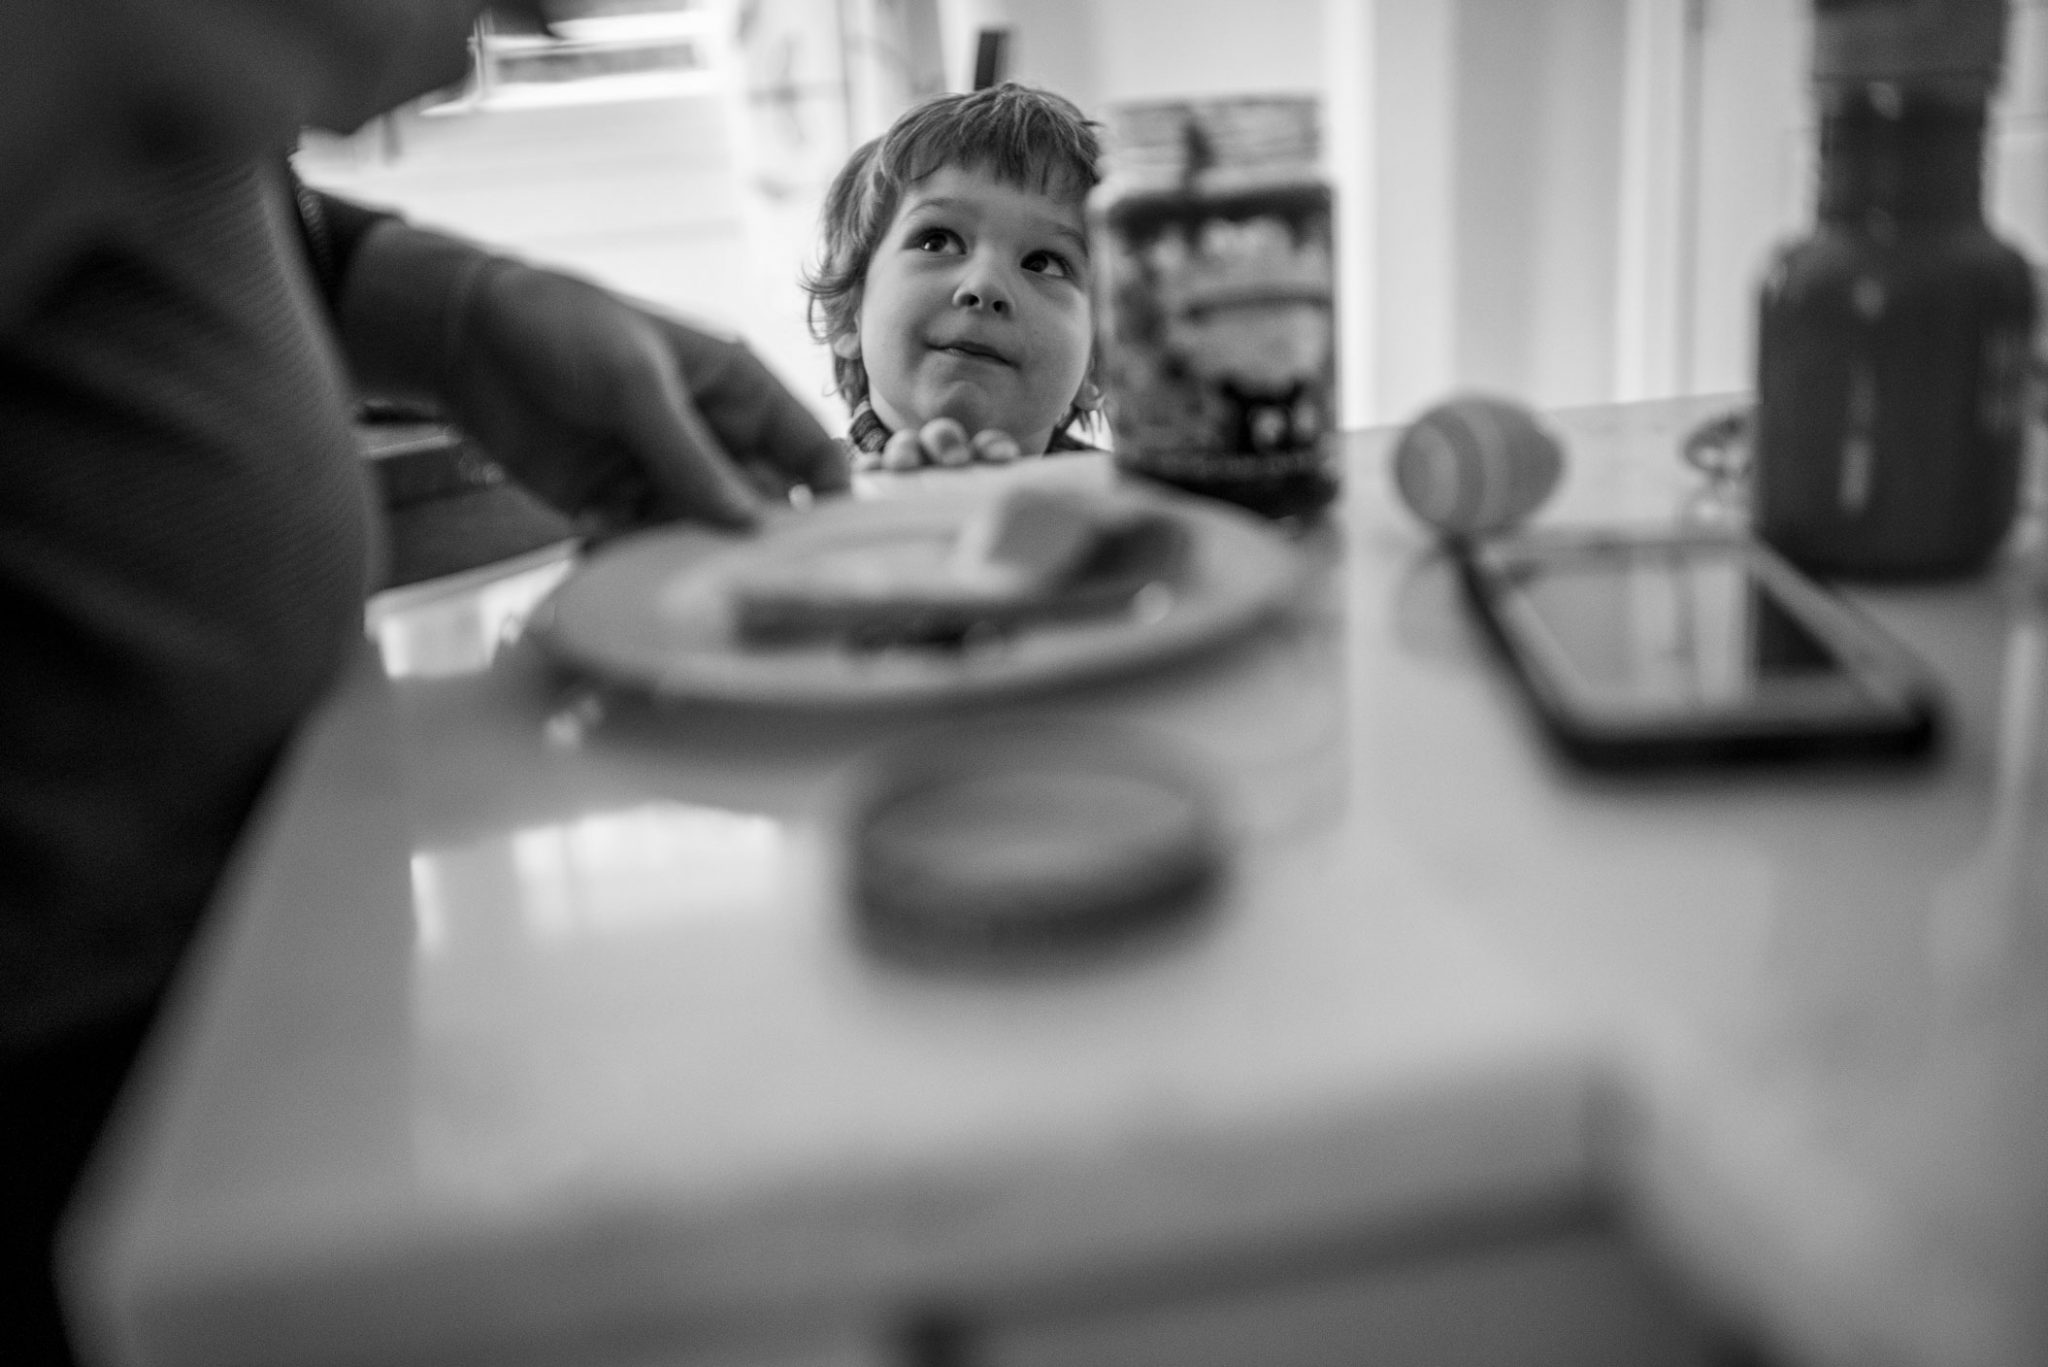 boy watching daddy make breakfast